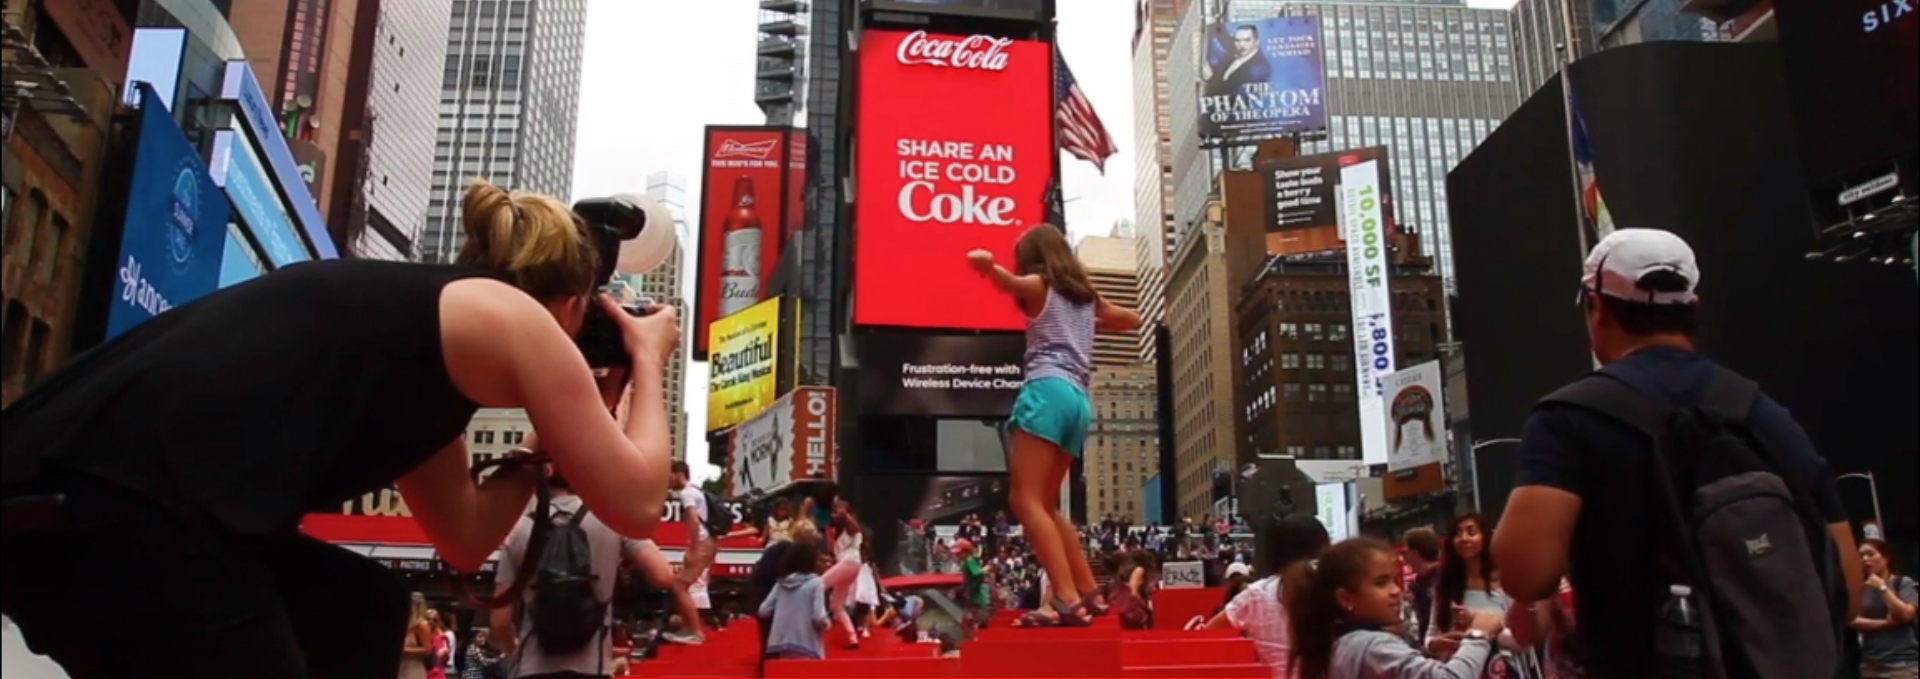 Coca-Cola 3D Robotic Billboard in Times Square Will Blow Your Mind ➤ Discover the season's newest design news and inspiration ideas. Visit Daily Design News and subscribe our newsletter! #dailydesignnews #designnews #CocaCola #DesignBuildIdeas